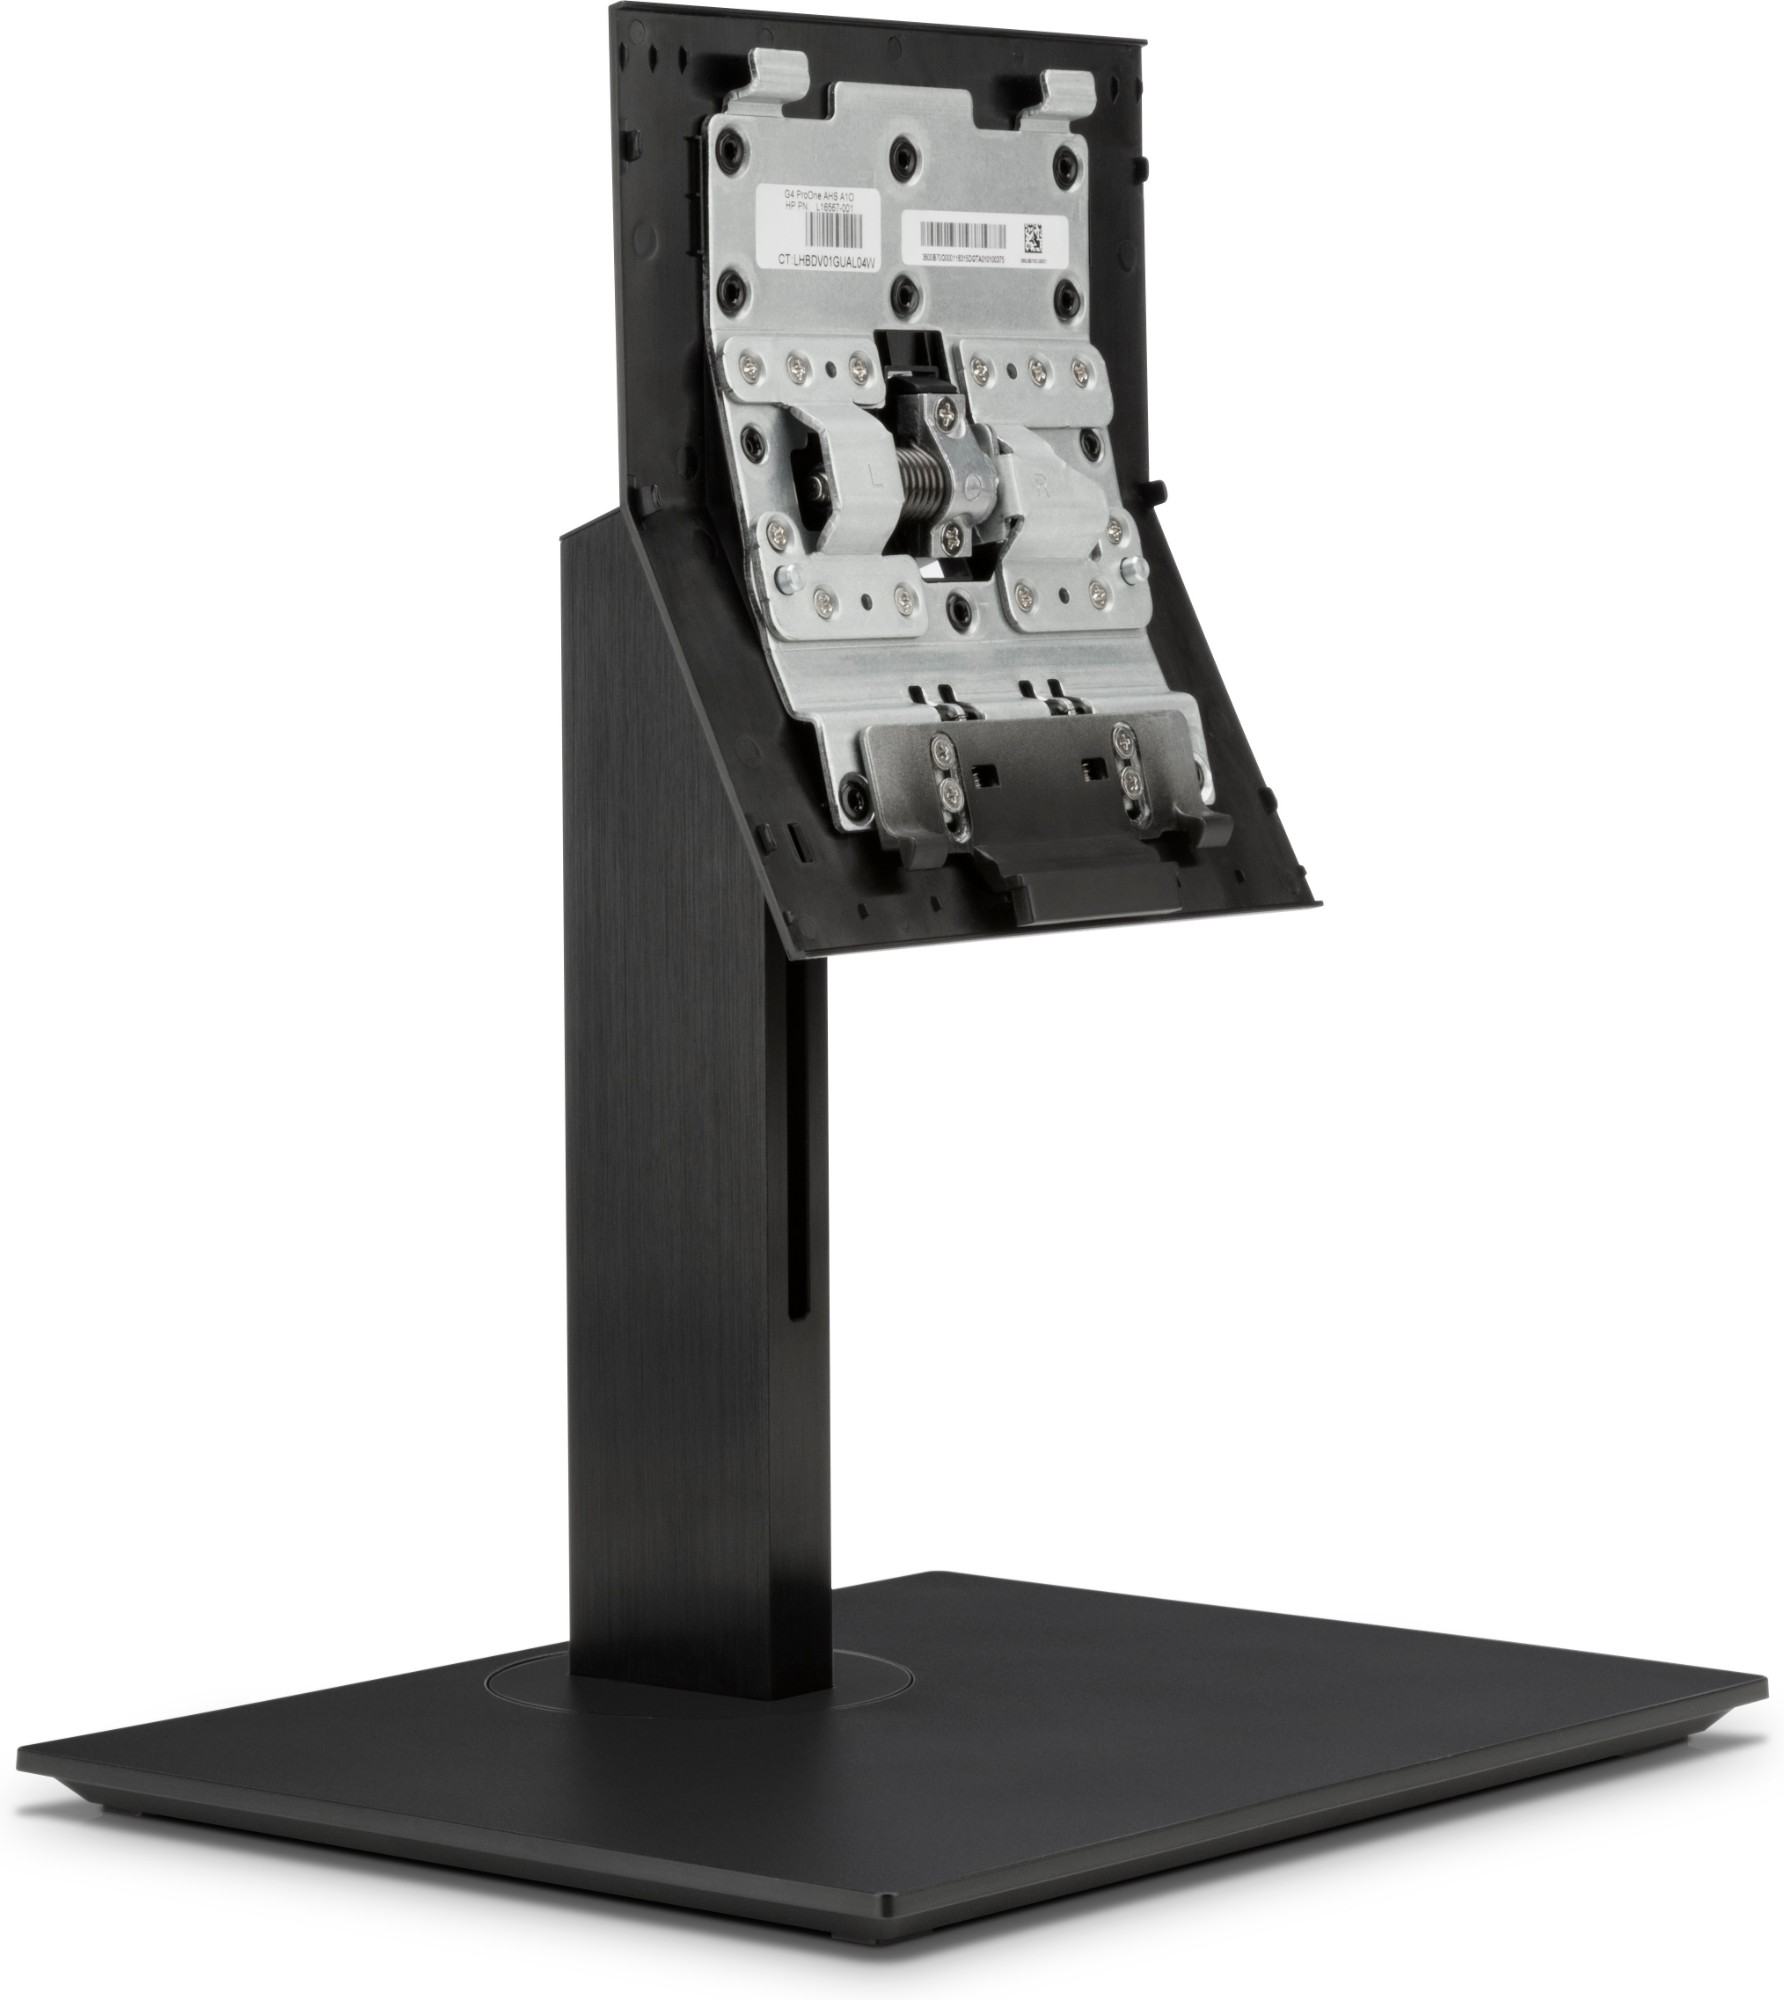 HP ProOne G4 Height Adjustable Stand Black